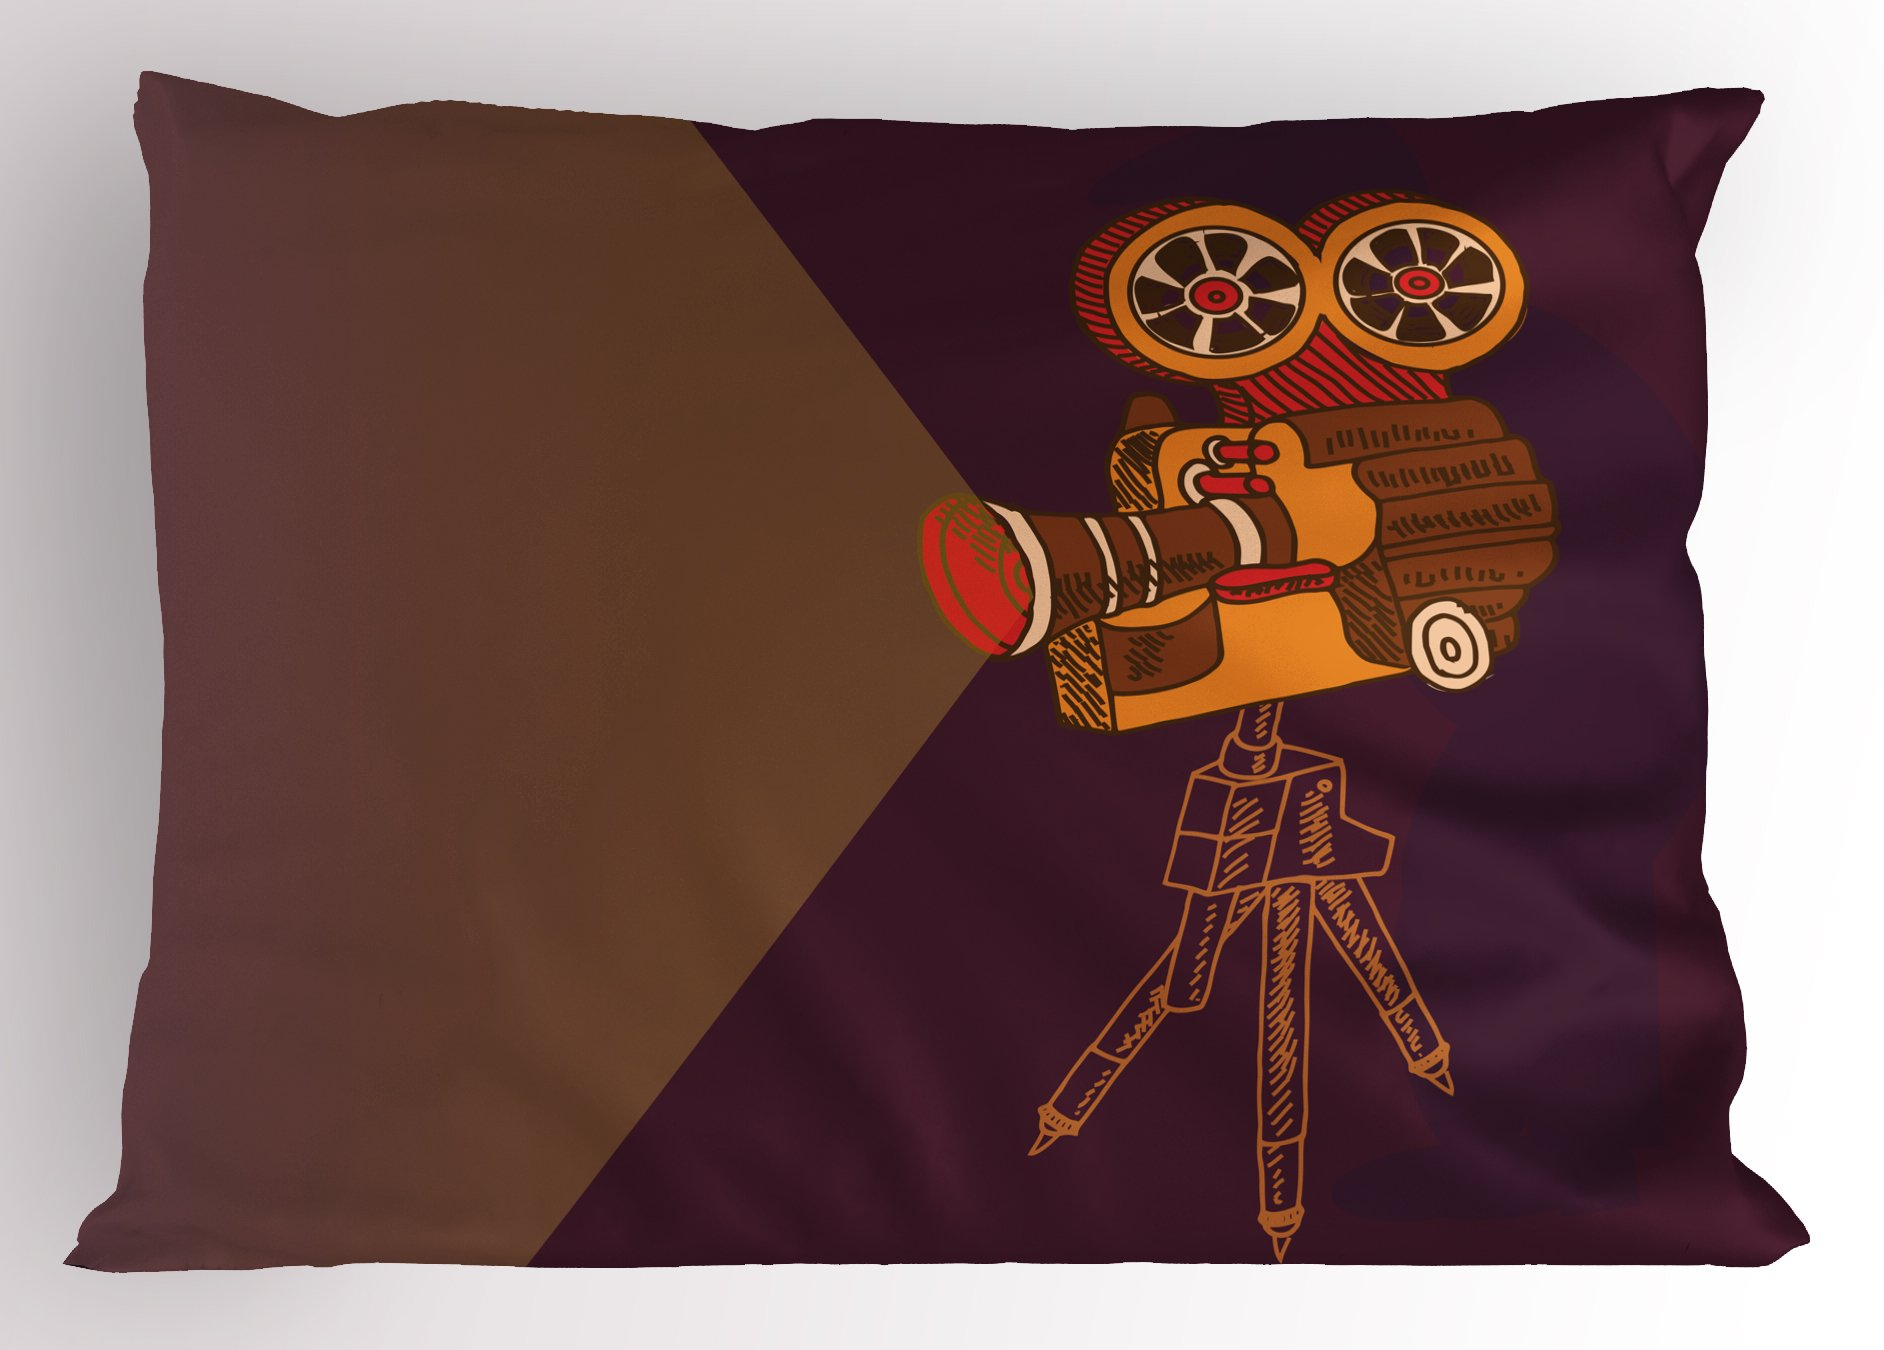 Lunarable Vintage Pillow Sham, Classic Movie Theater Machine with Cinema Fest Typography Past Filmmaker Print, Decorative Standard King Size Printed Pillowcase, 36 X 20 inches, Brown Purple